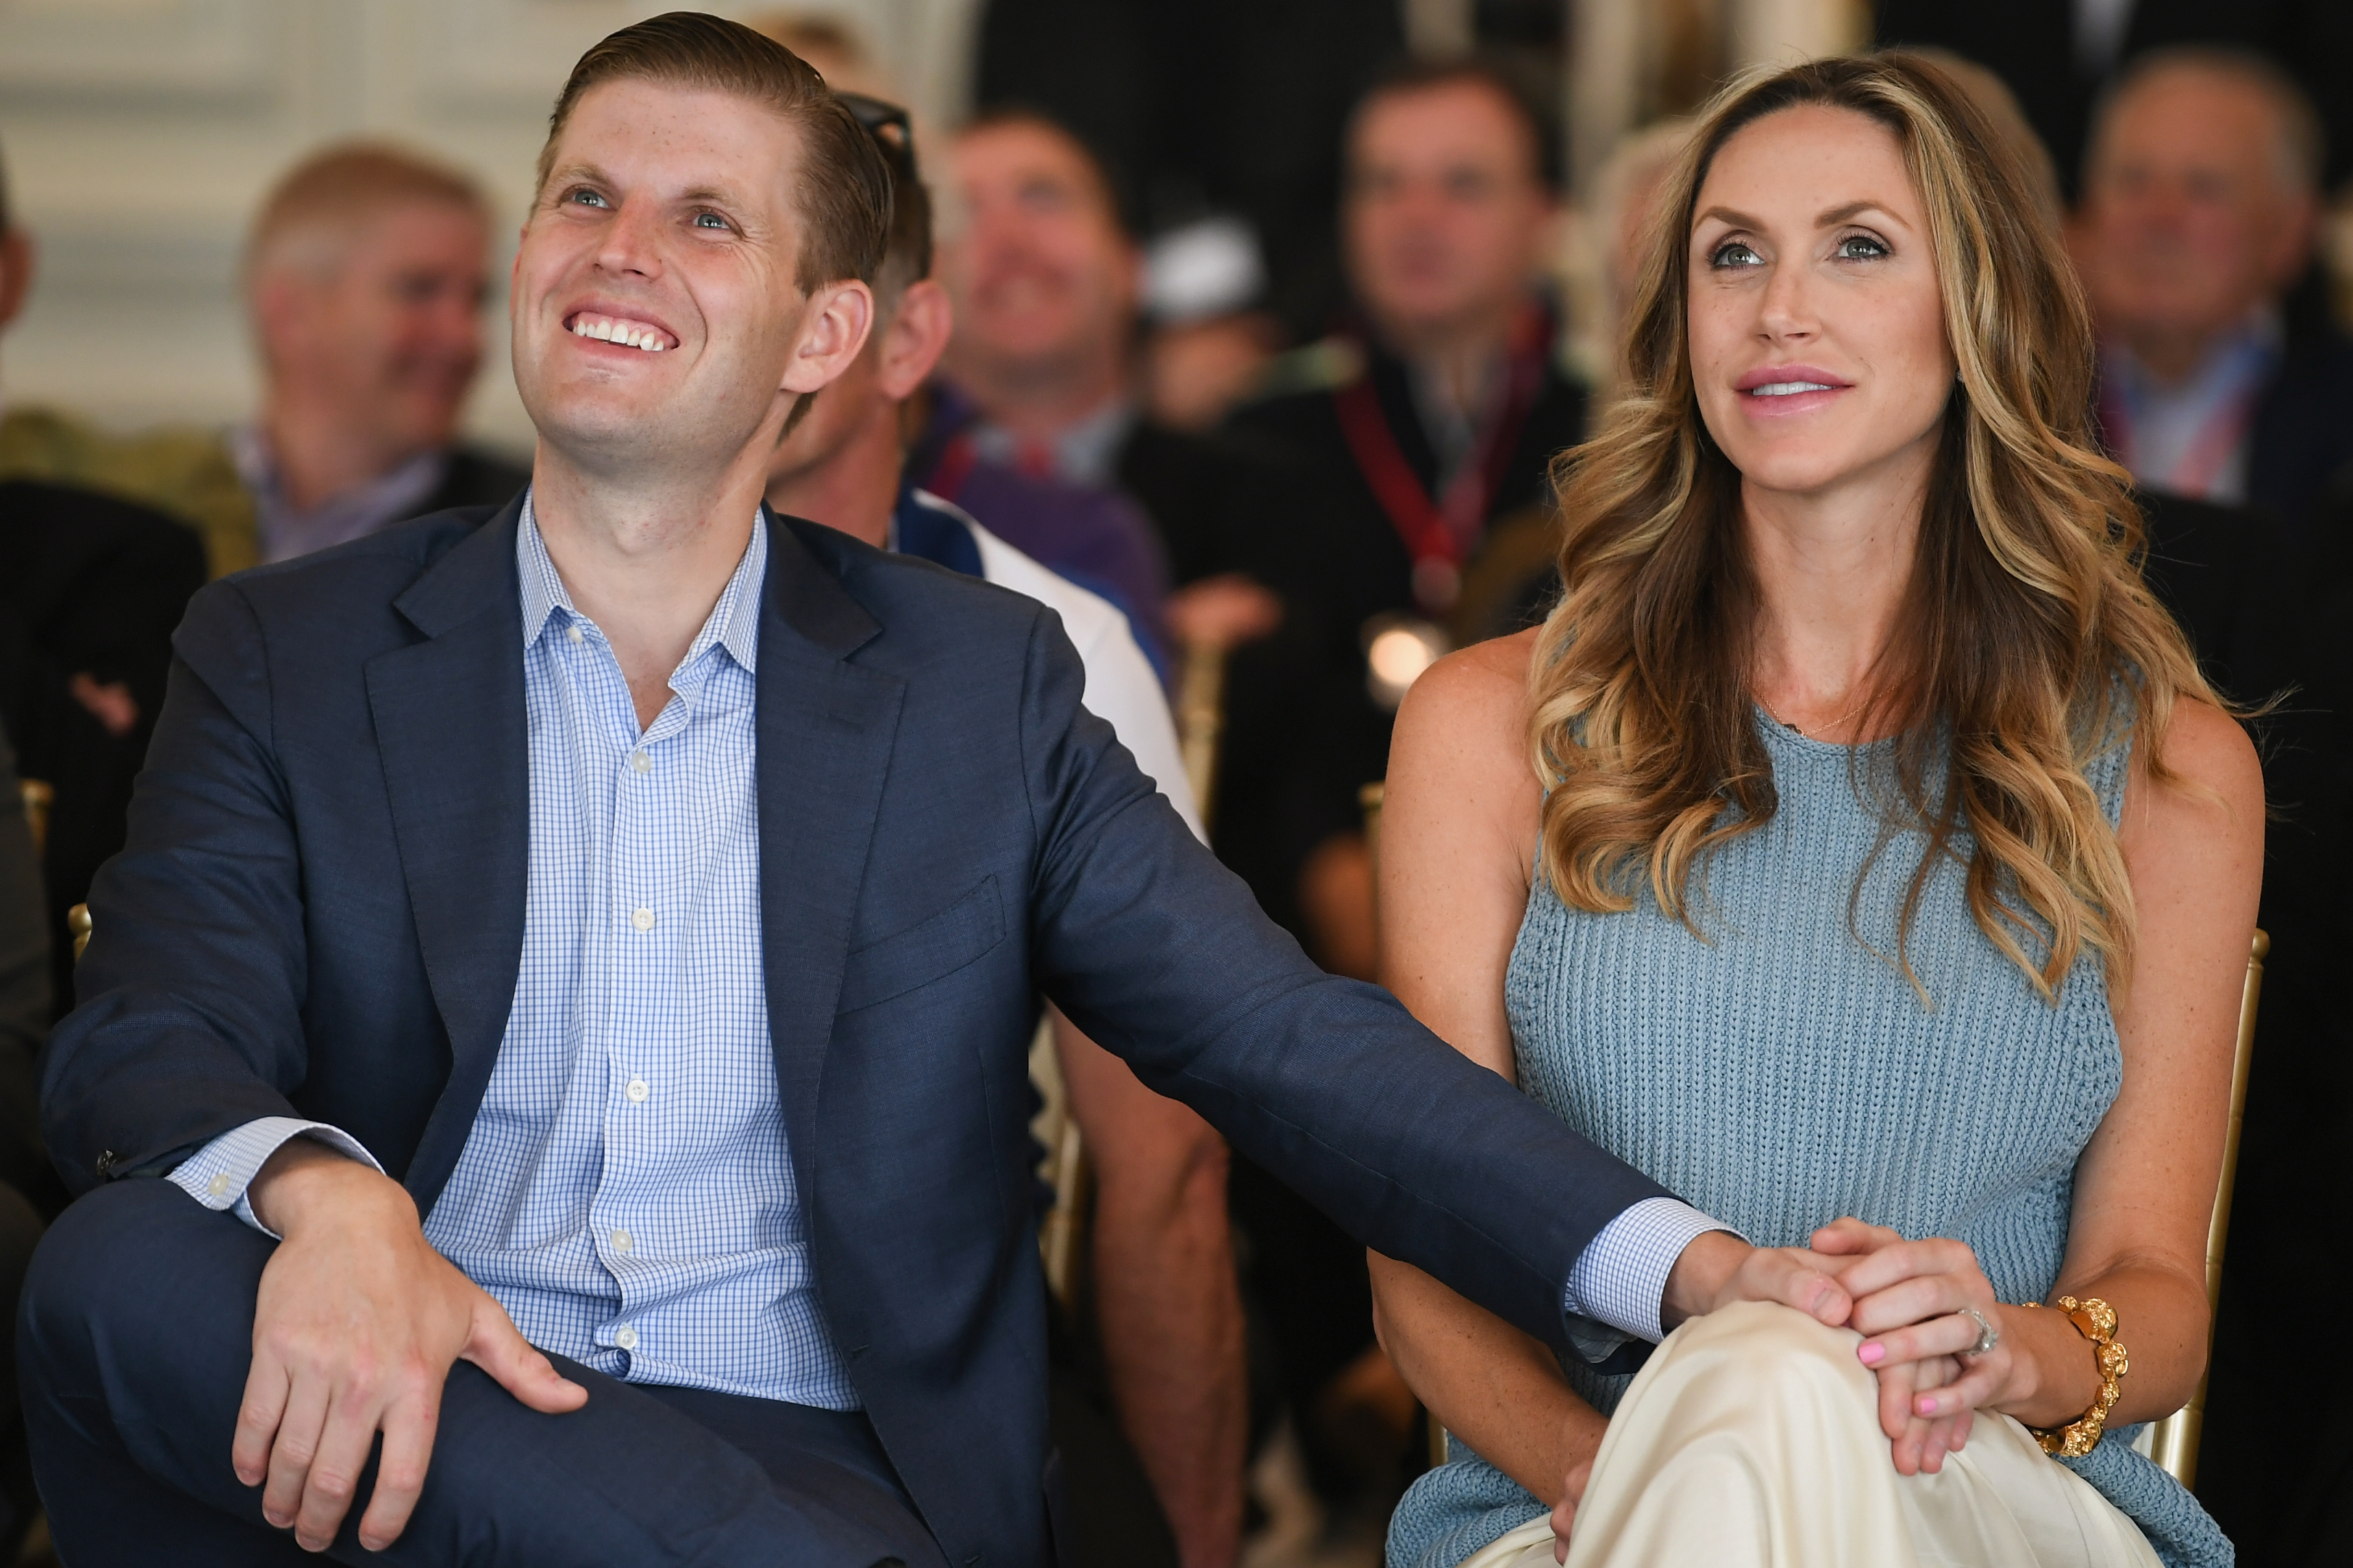 TURNBERRY, SCOTLAND - JUNE 28: Eric Trump and his wife Lara attend the opening Trump Turnberry's new golf course the King Robert The Bruce course on June 28, 2017 in Turnberry, Scotland. Formerly the Kintyre Course, it has been redesigned and upgraded and forms the second course to the acclaimed championship Ailsa course. (Photo by Jeff J Mitchell/Getty Images)